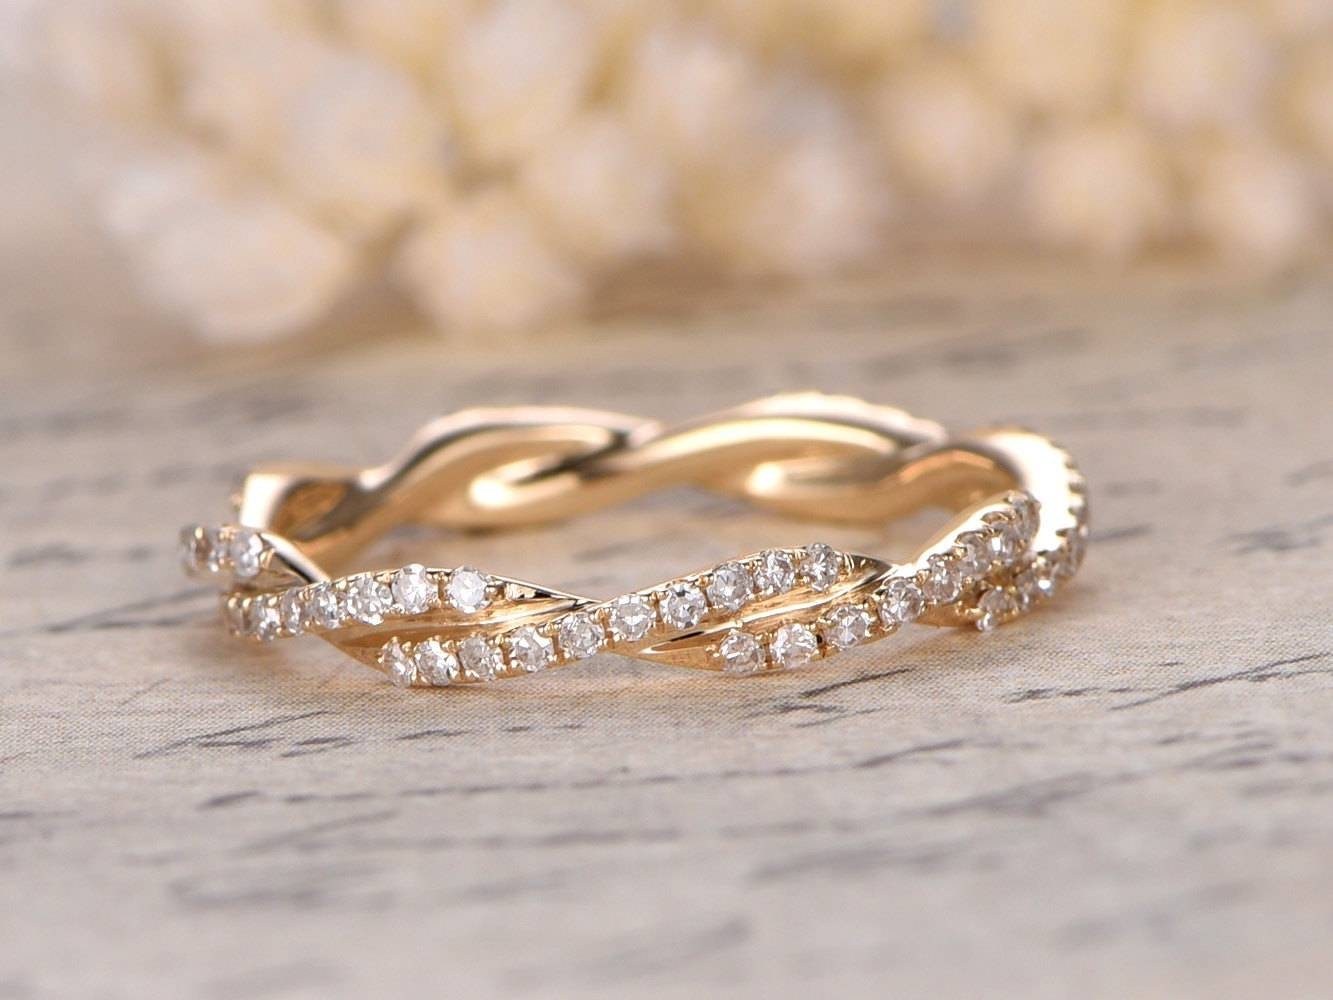 Diamond Wedding Bandfull Eternity Anniversary Ring 14K Regarding Most Recently Released Yellow Gold Anniversary Rings (View 8 of 25)